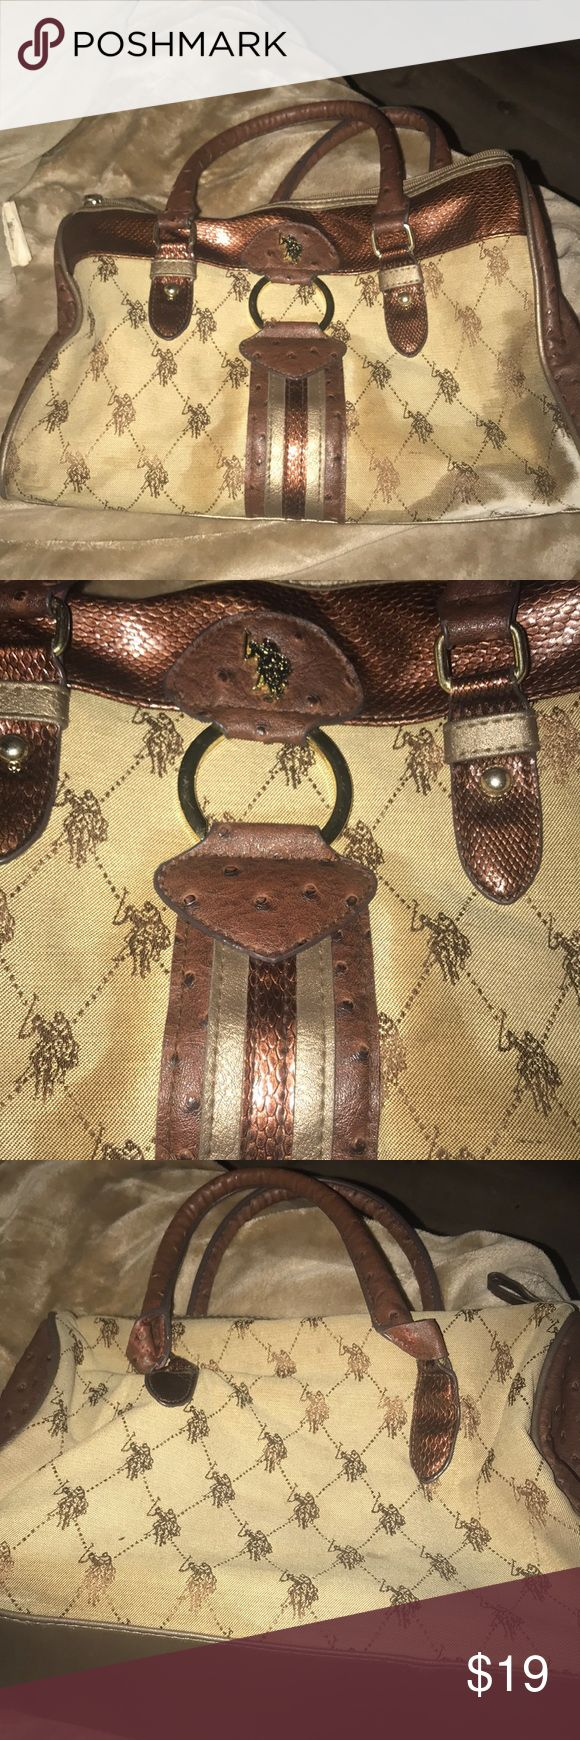 US Polo tan and brown hand bag classy and stylish Straight from NYC, rock this handbag to work or a party. Regardless you will be looking fresh and awesome U.S. Polo Assn. Bags Totes